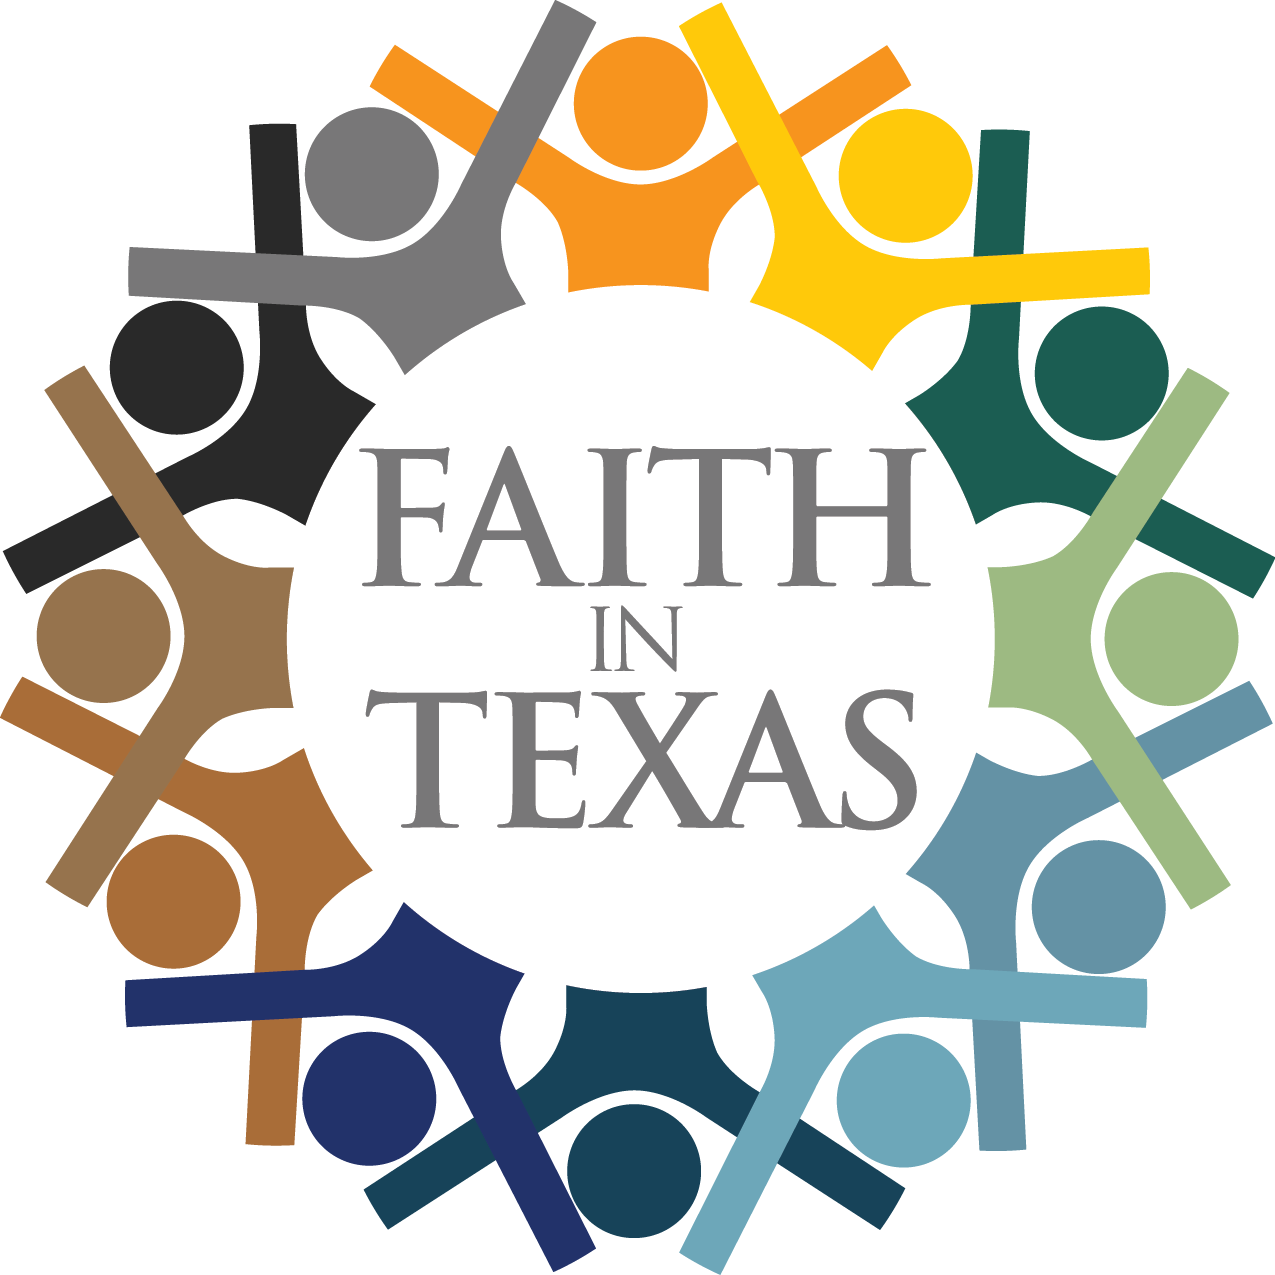 Faith in Texas logo